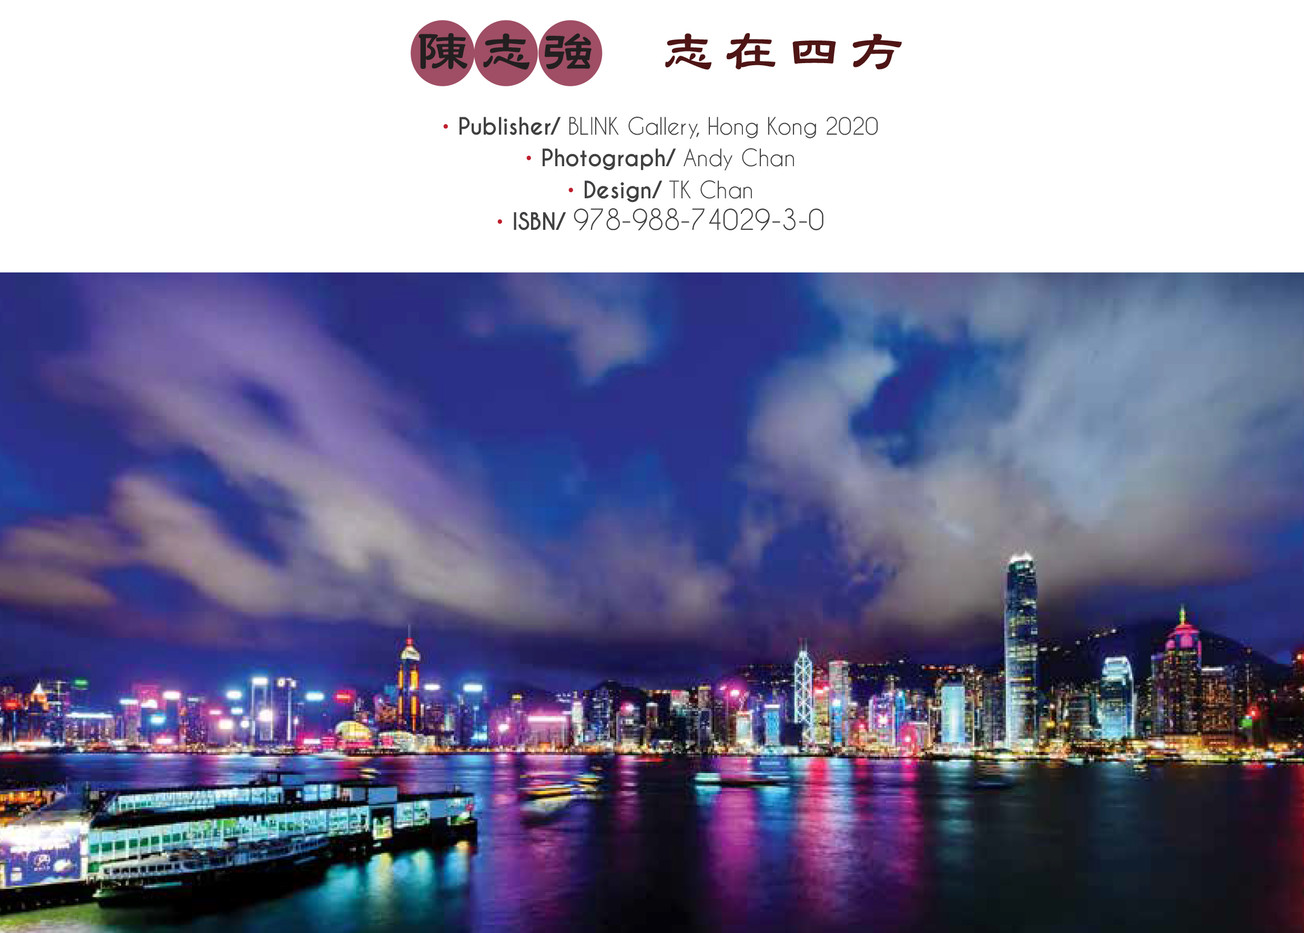 Anywhere in the the world 志在四方 Andy Chan's Photography 陳志強影集  Price : HKD 200 per book